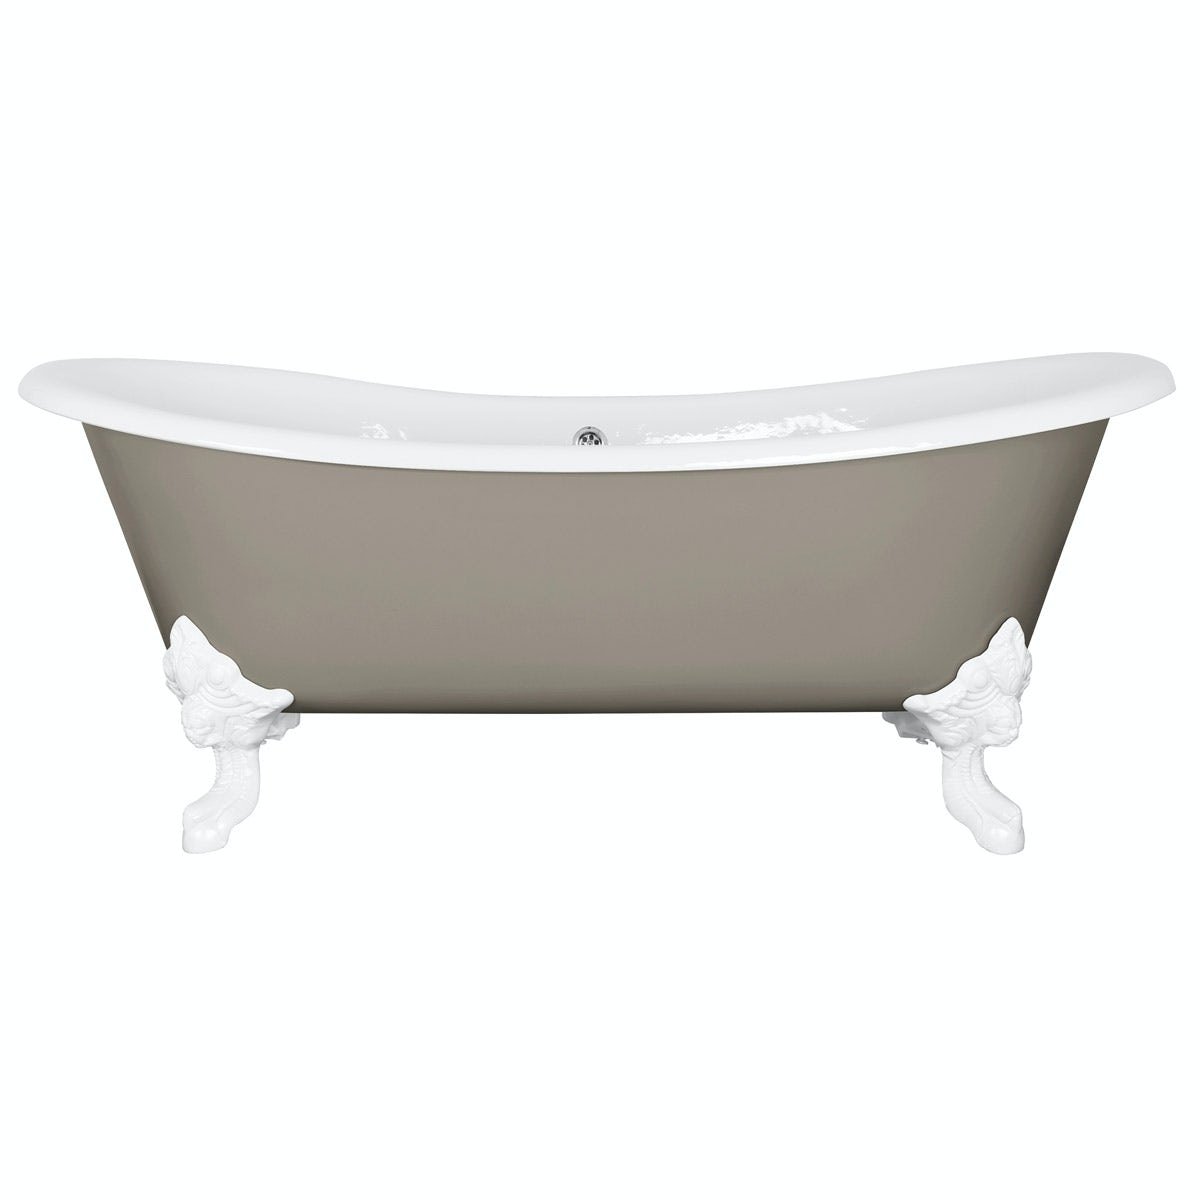 The Bath Co. Dover pavilion grey cast iron bath